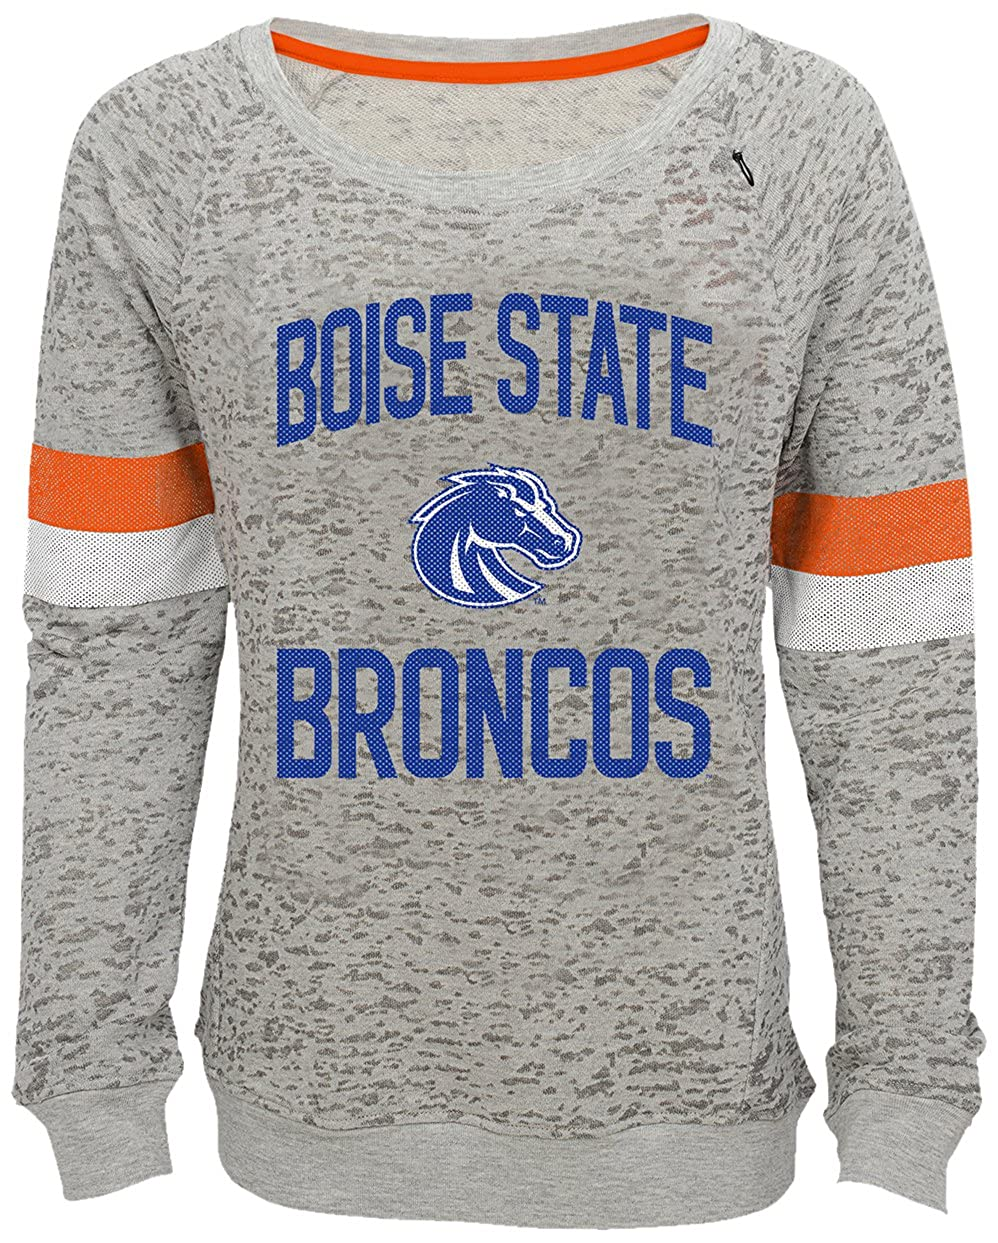 NCAA by Outerstuff NCAA Boise State Broncos Youth Girls My City Boat Neck Pullover 7-8 Heather Grey Youth Small